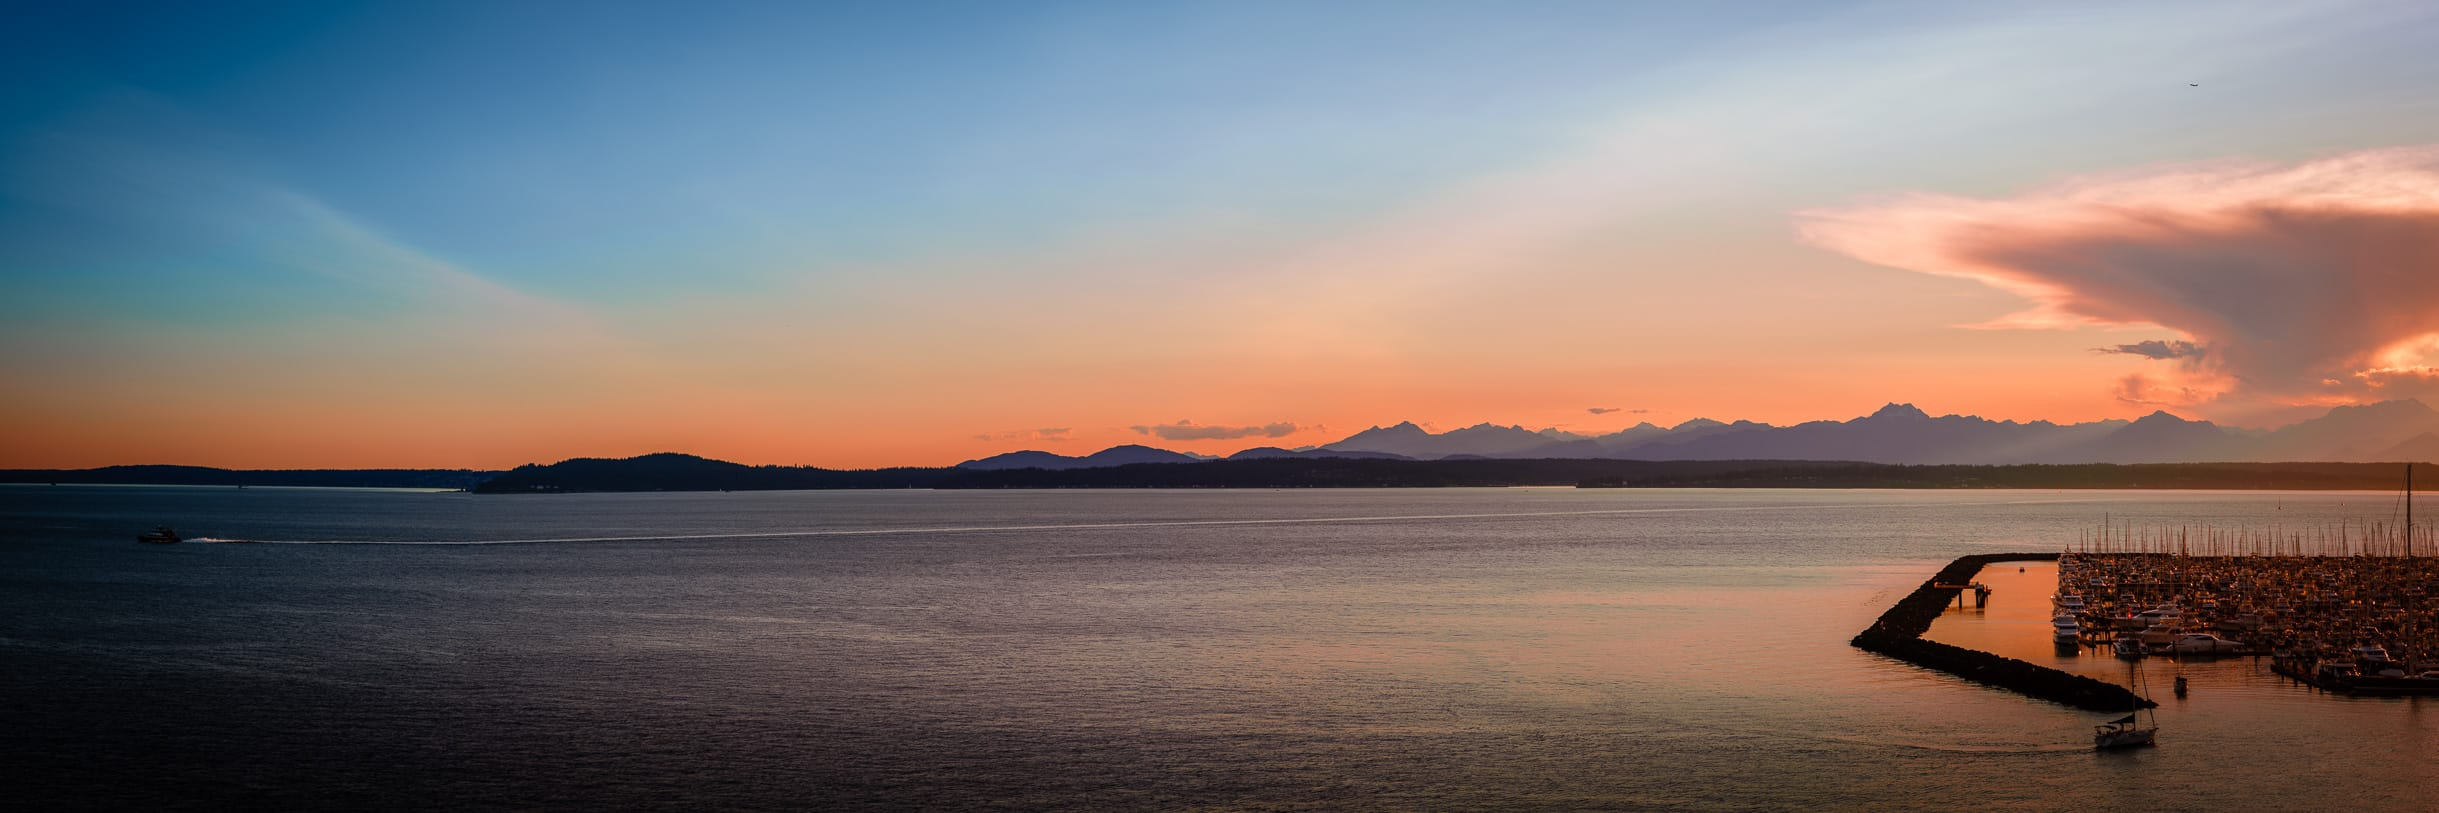 The last light of day on Elliott Bay, Seattle, Washington.